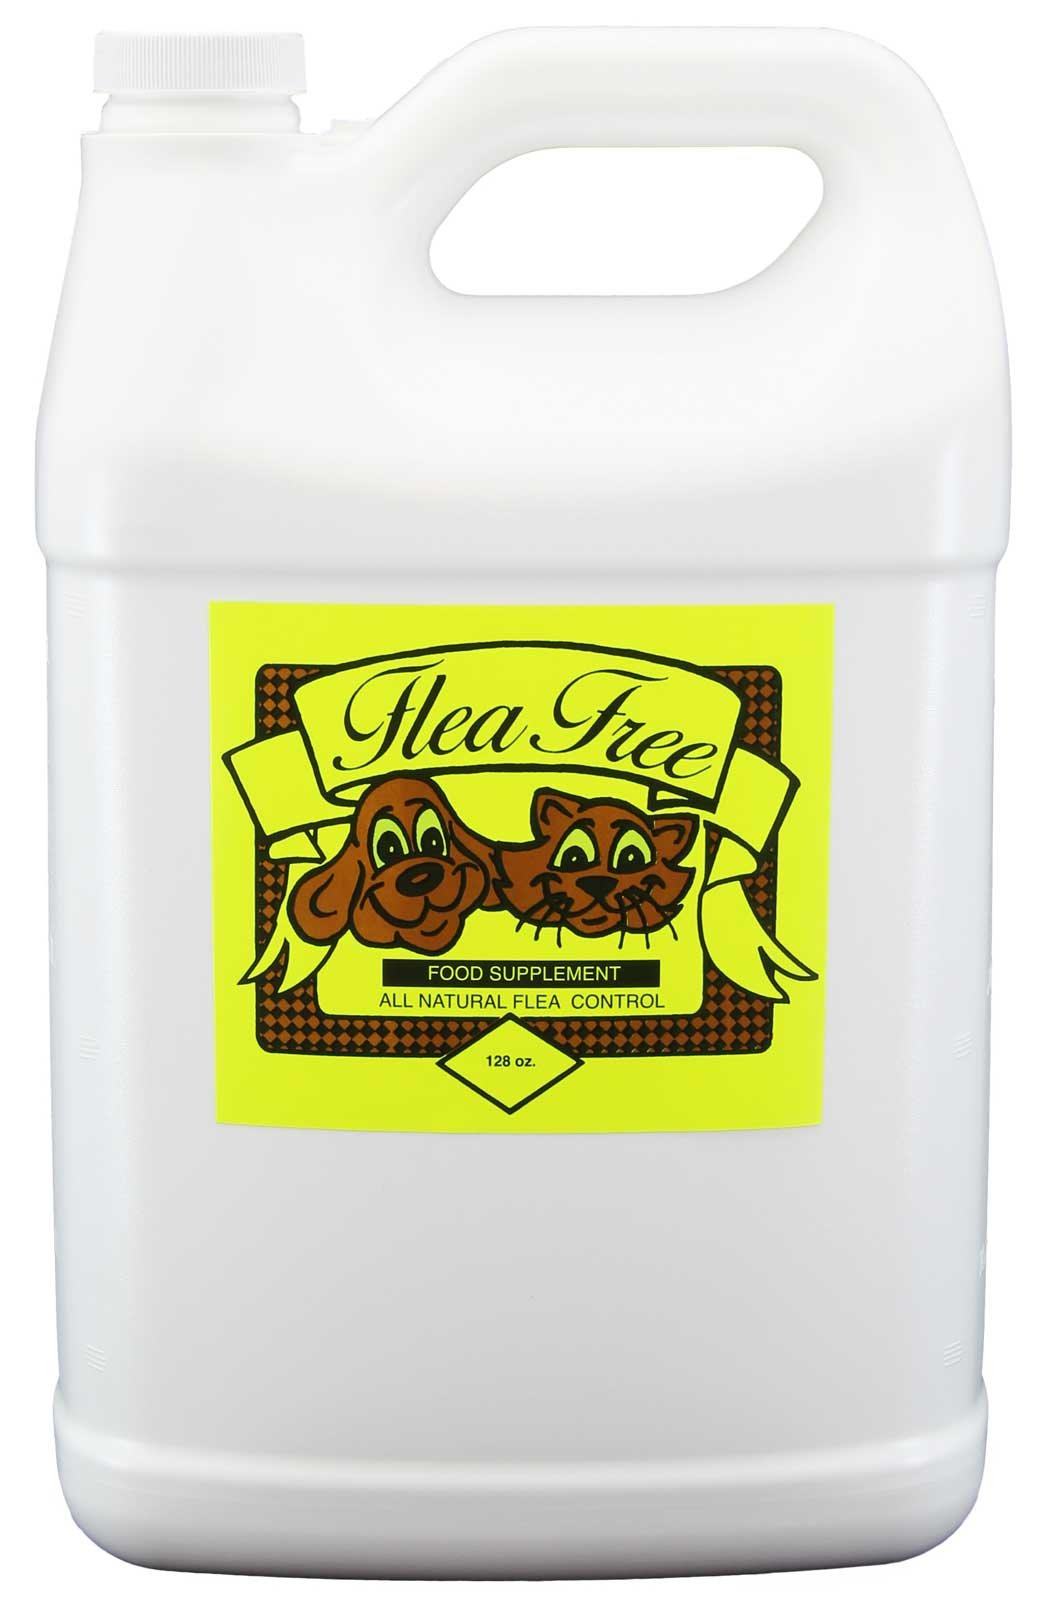 Flea-Free Pure Organic Food Supplement and Natural Pet Products , 128 Ounce by Natural Pet Products